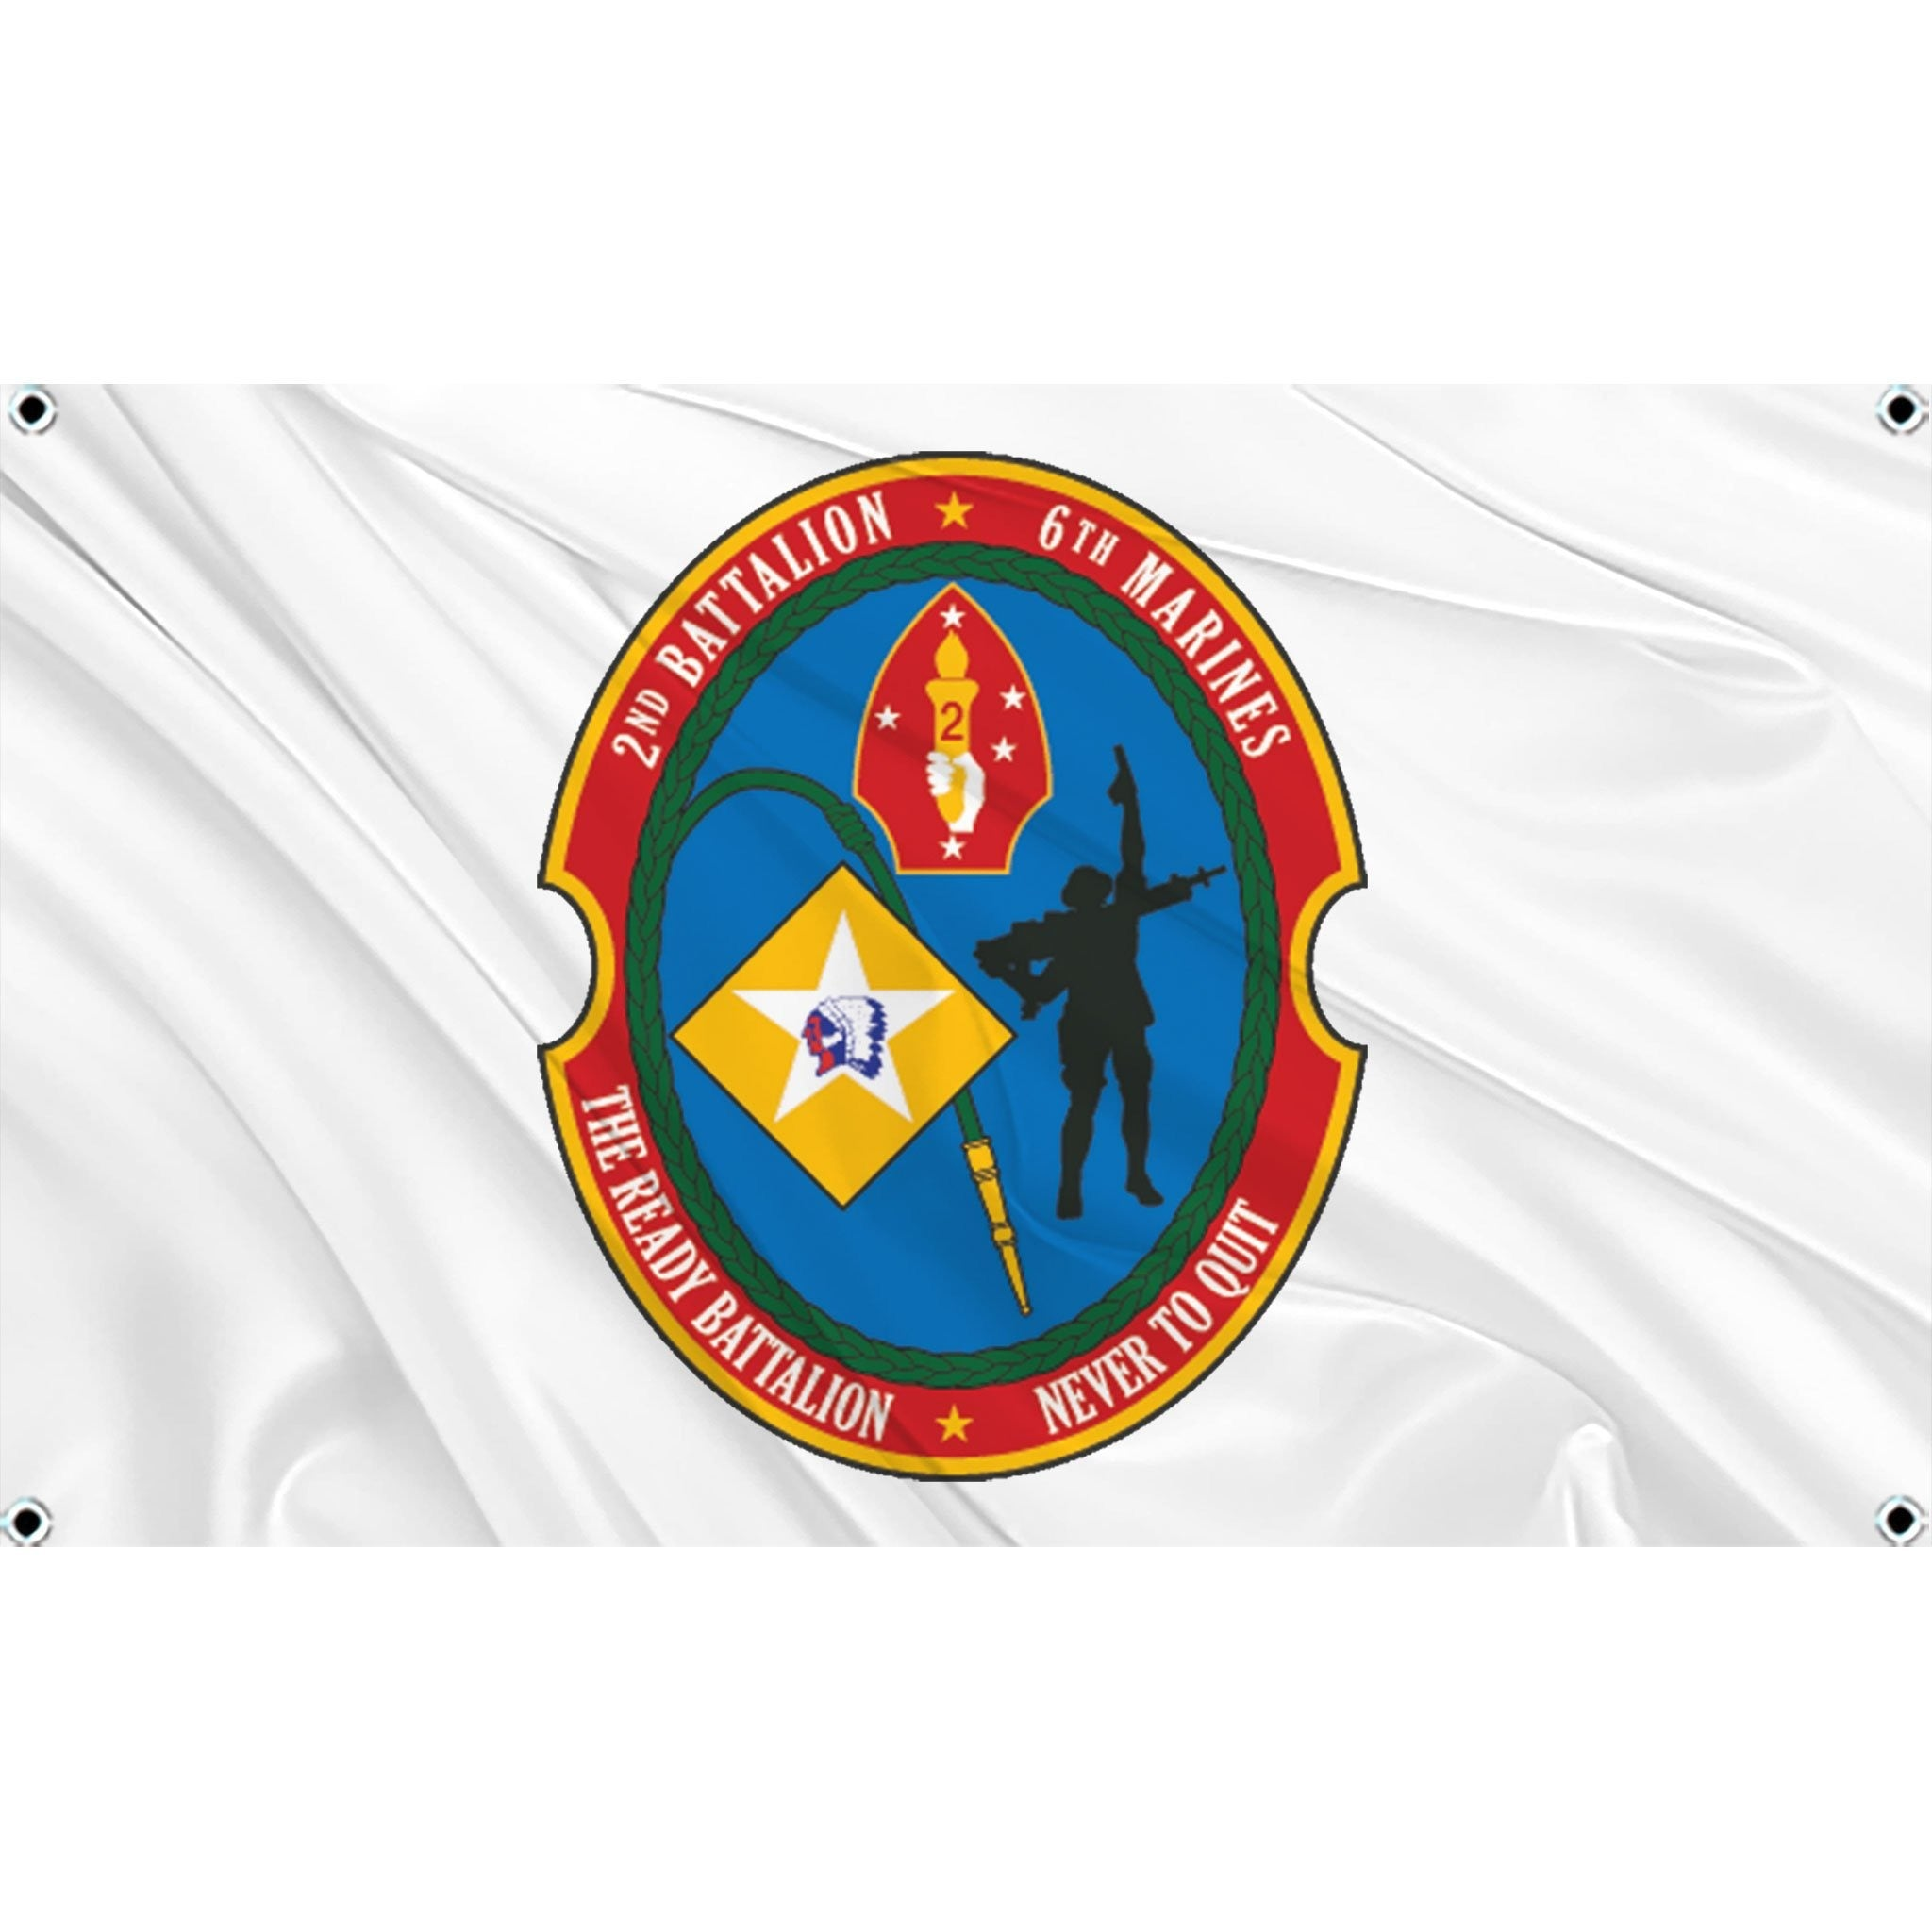 2nd Battalion  6th Marines logo on white flag